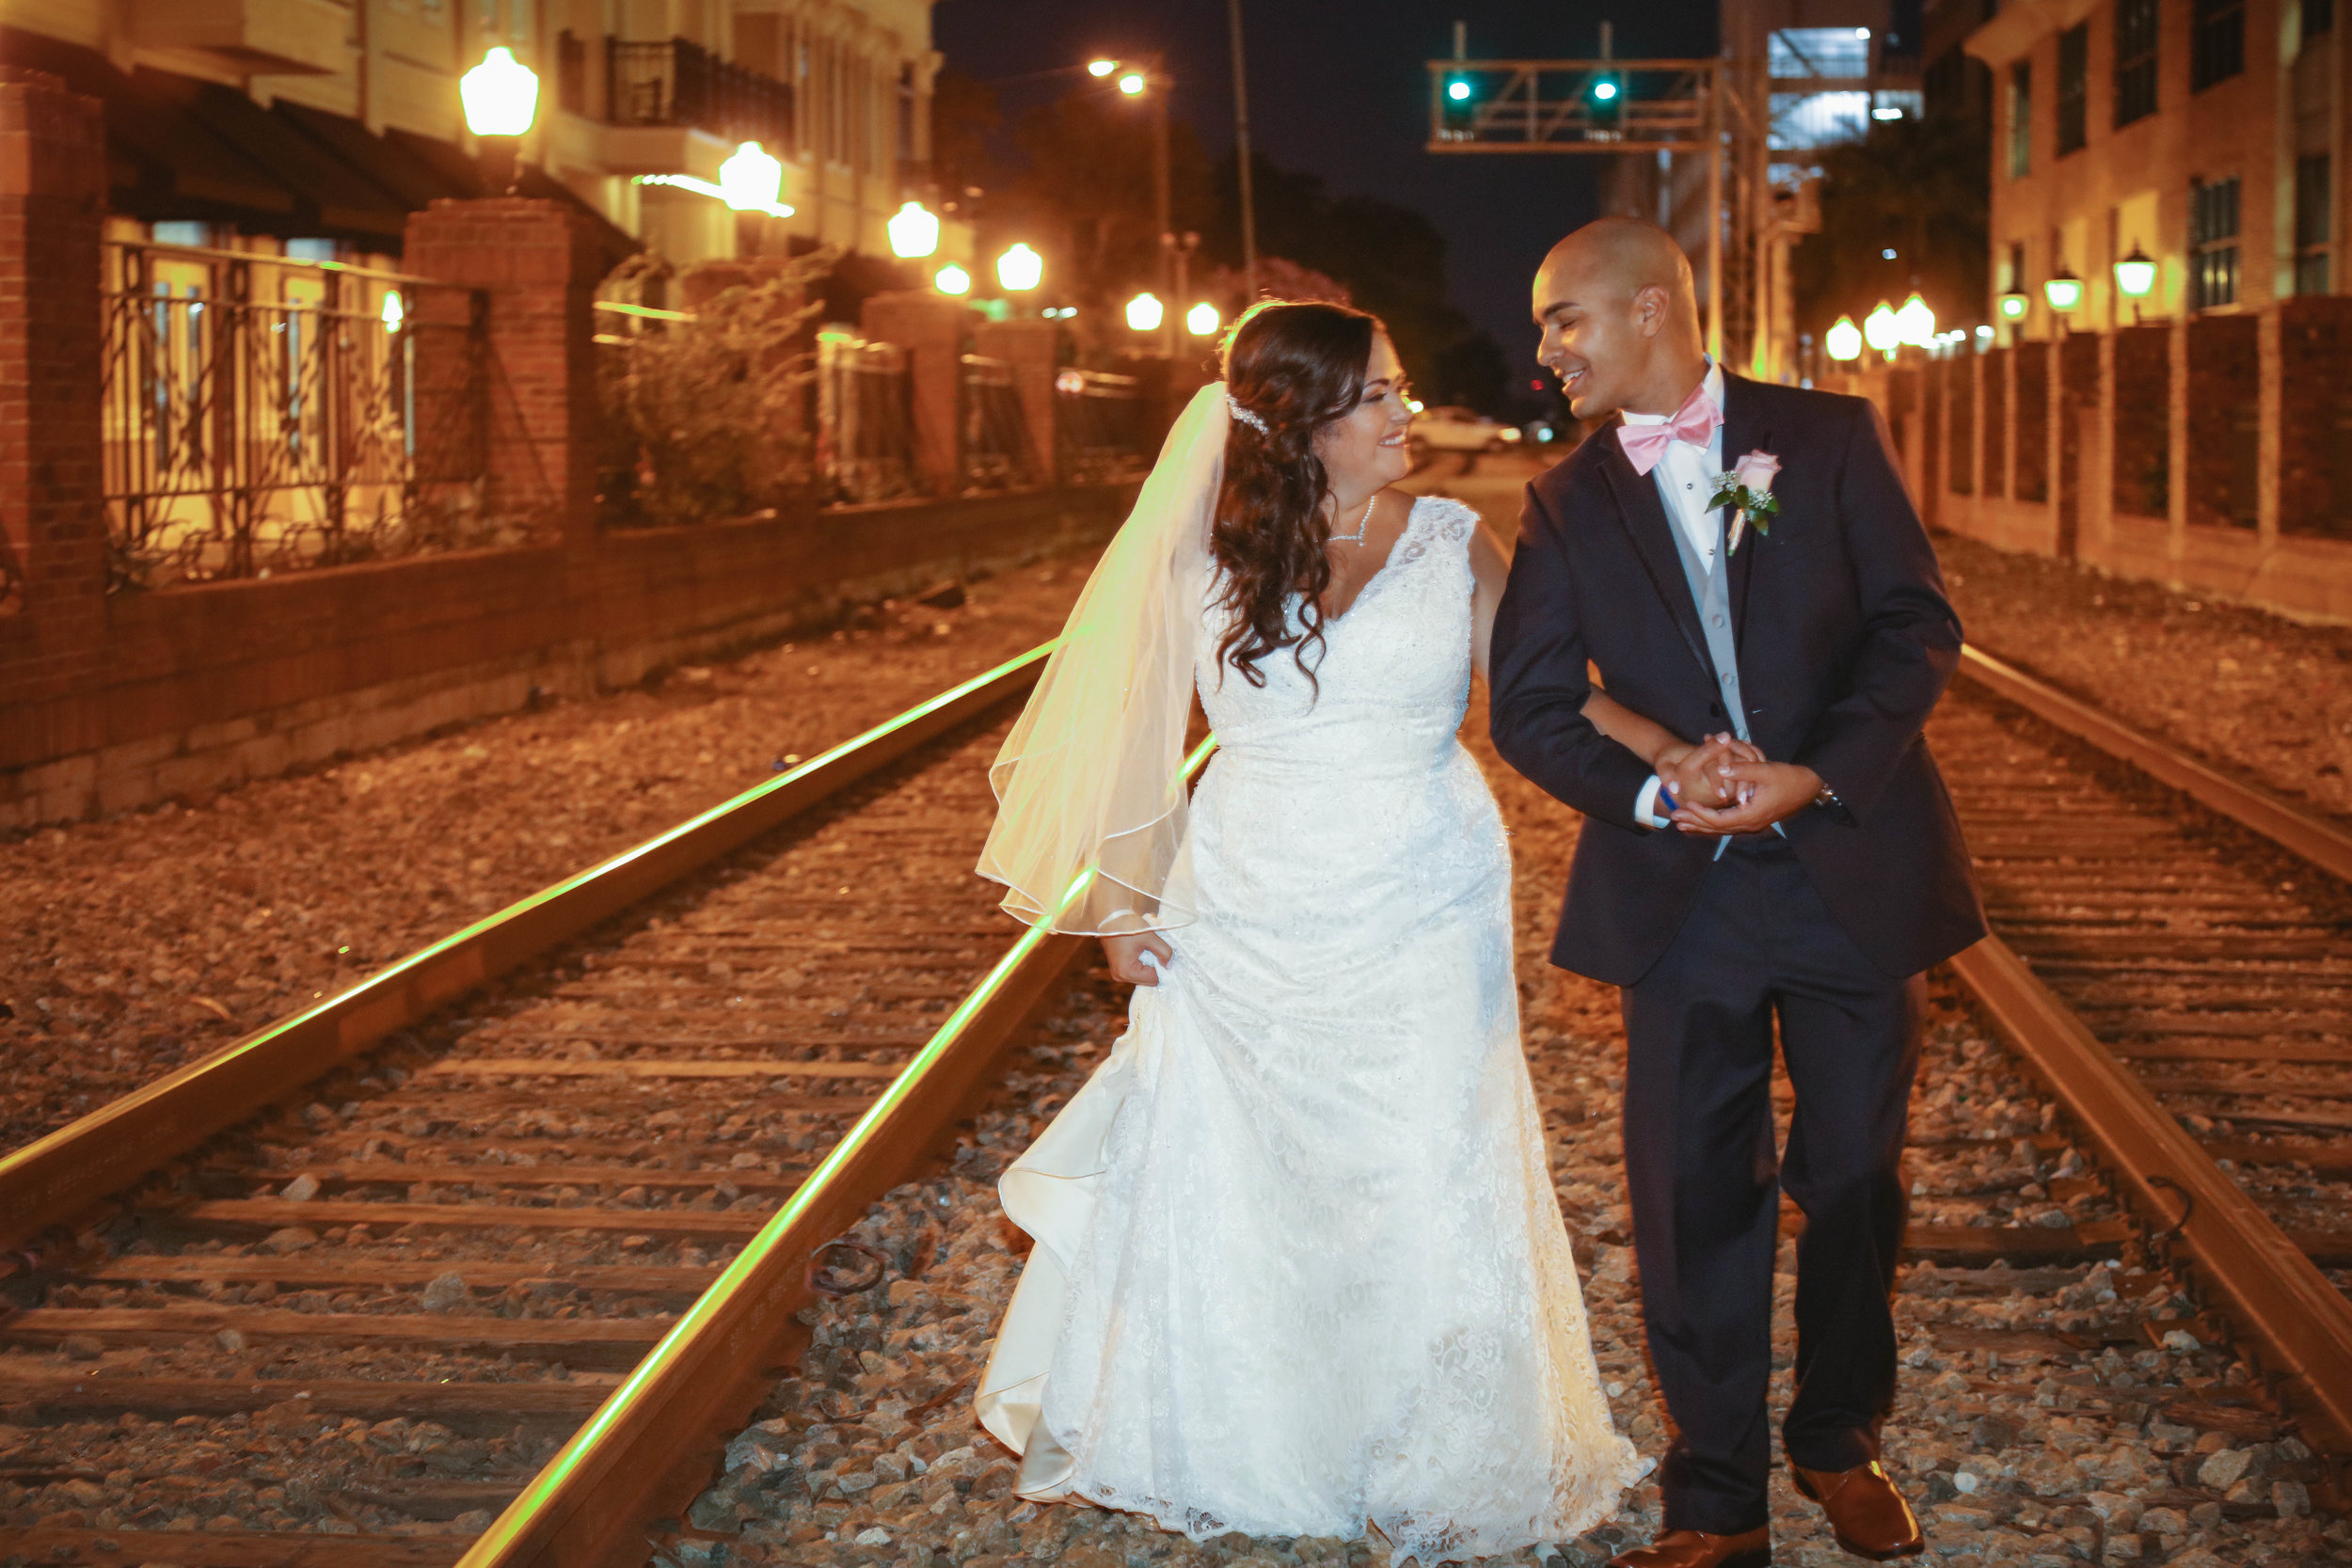 happy relationships, wedding, downtown orlando, wedding photo, railroad, bride, groom